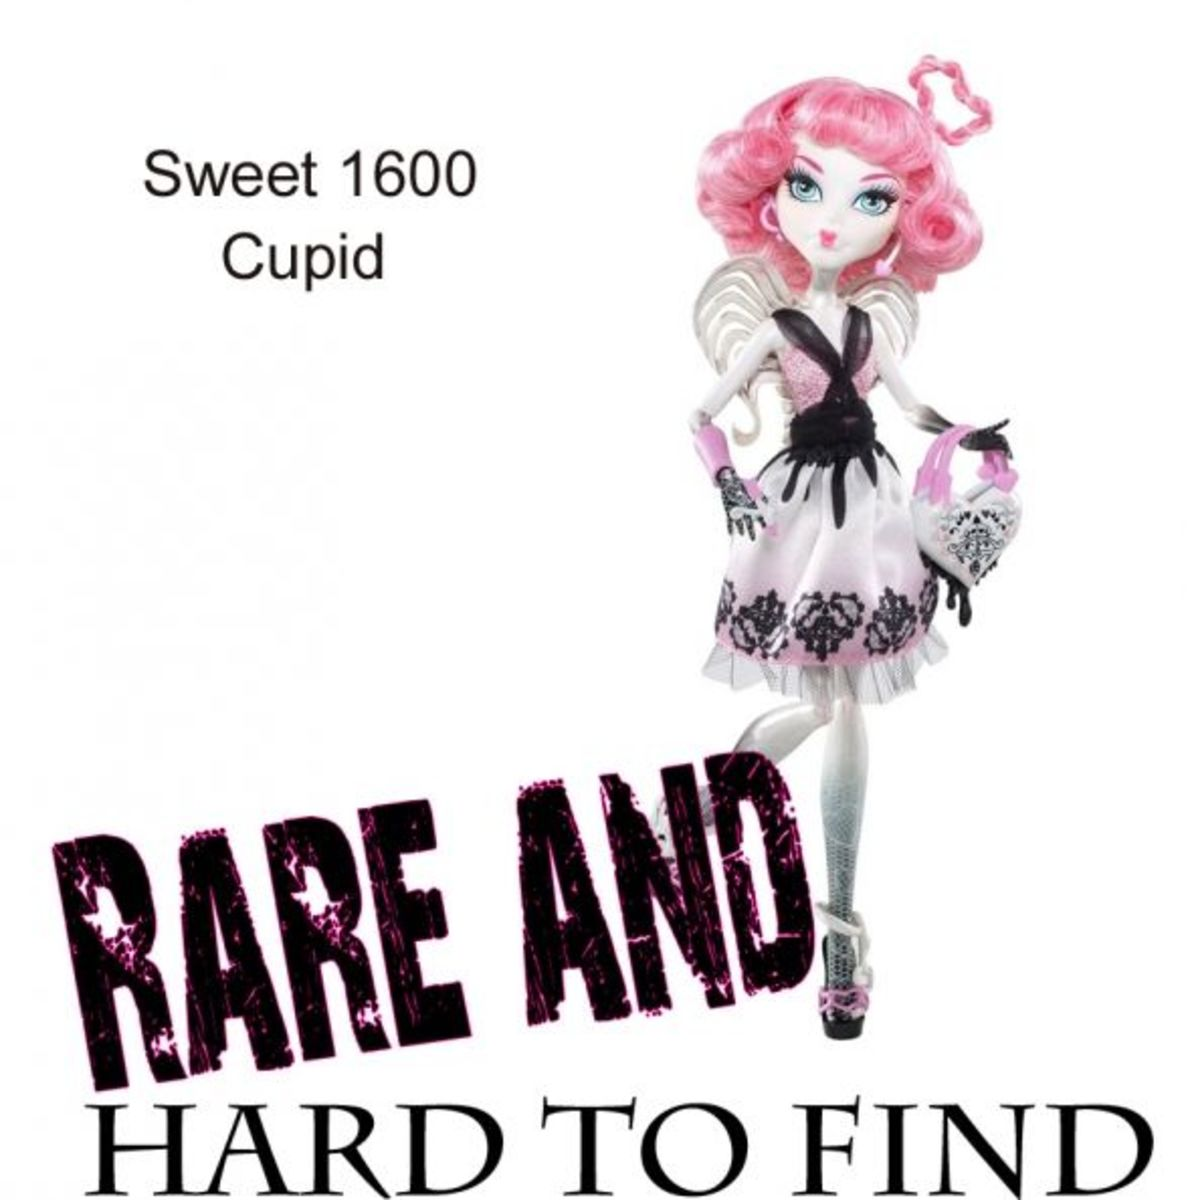 Rare Cupid Sweet 1600  Monster High Doll Collectible